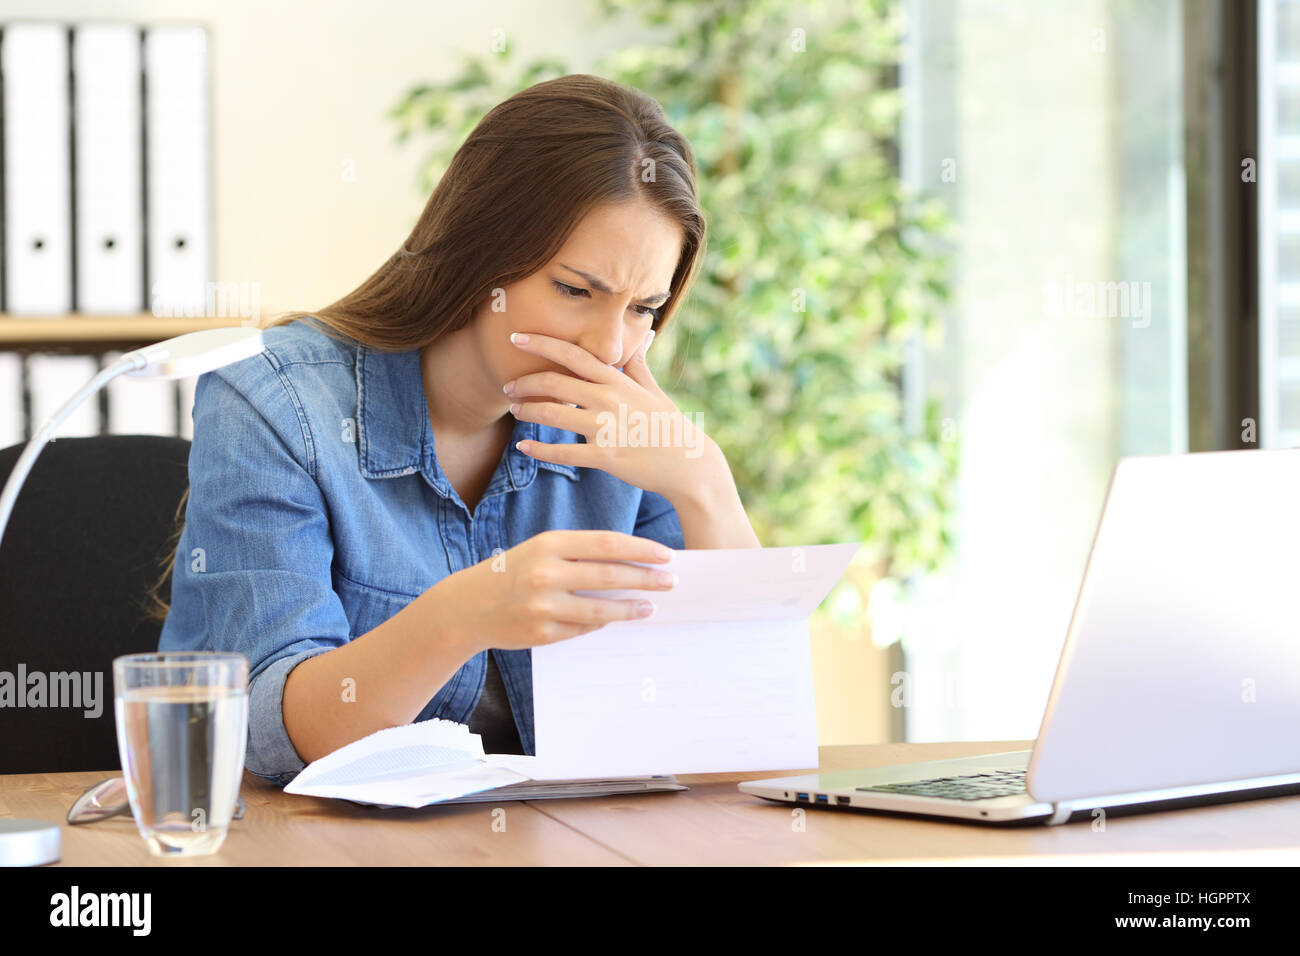 Worried Entrepreneur Girl Working At Office Reading Bad News In A